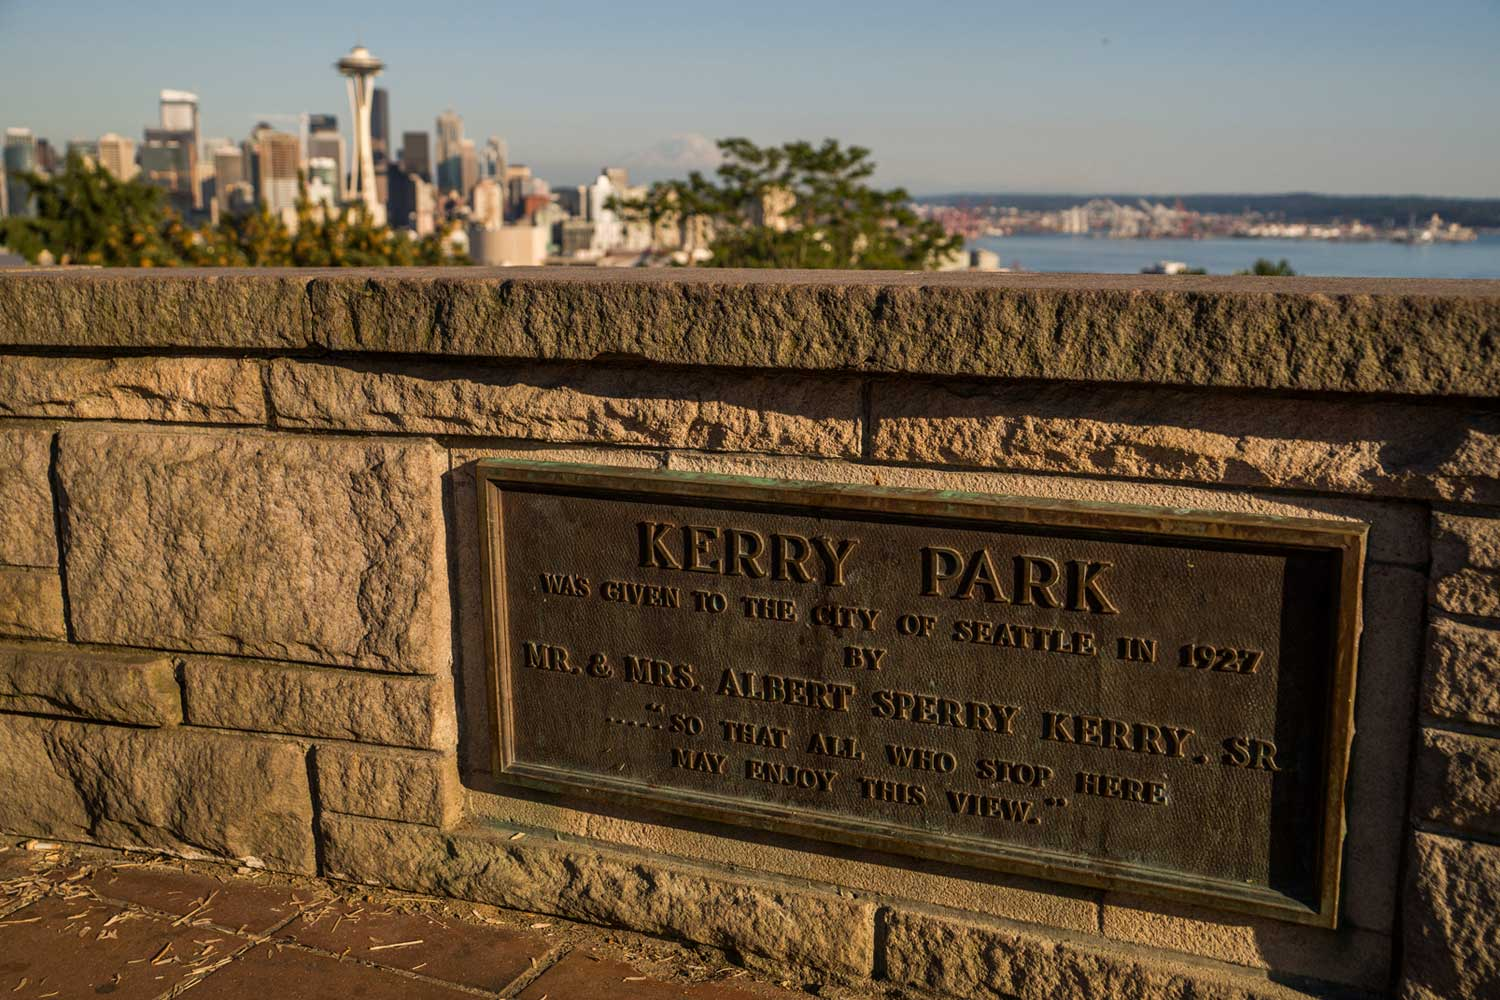 "This plack commemorates the Kerrys for donating Kerry Park to the City. It also includes the quote of why they did it, ""... so that all who stop here may enjoy this view."""